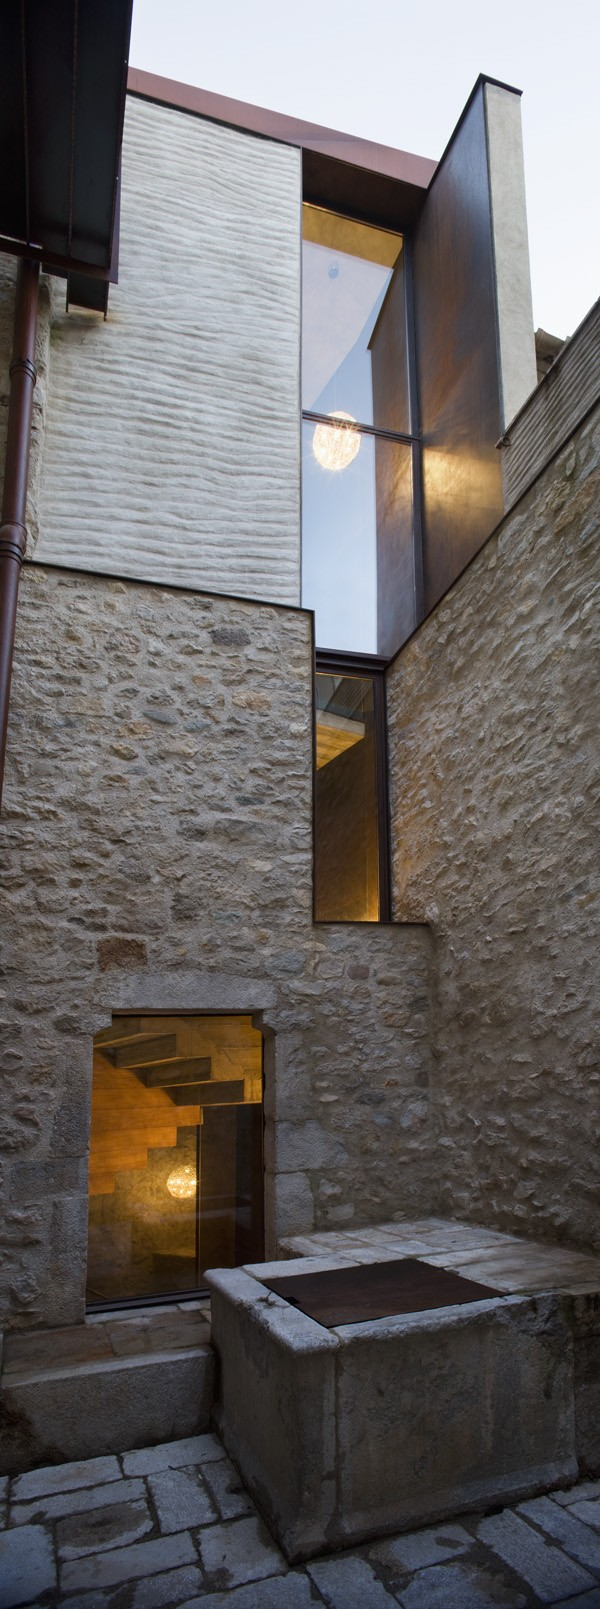 Original water tank Breathtaking Medieval Building Turned Into Contemporary Living Space